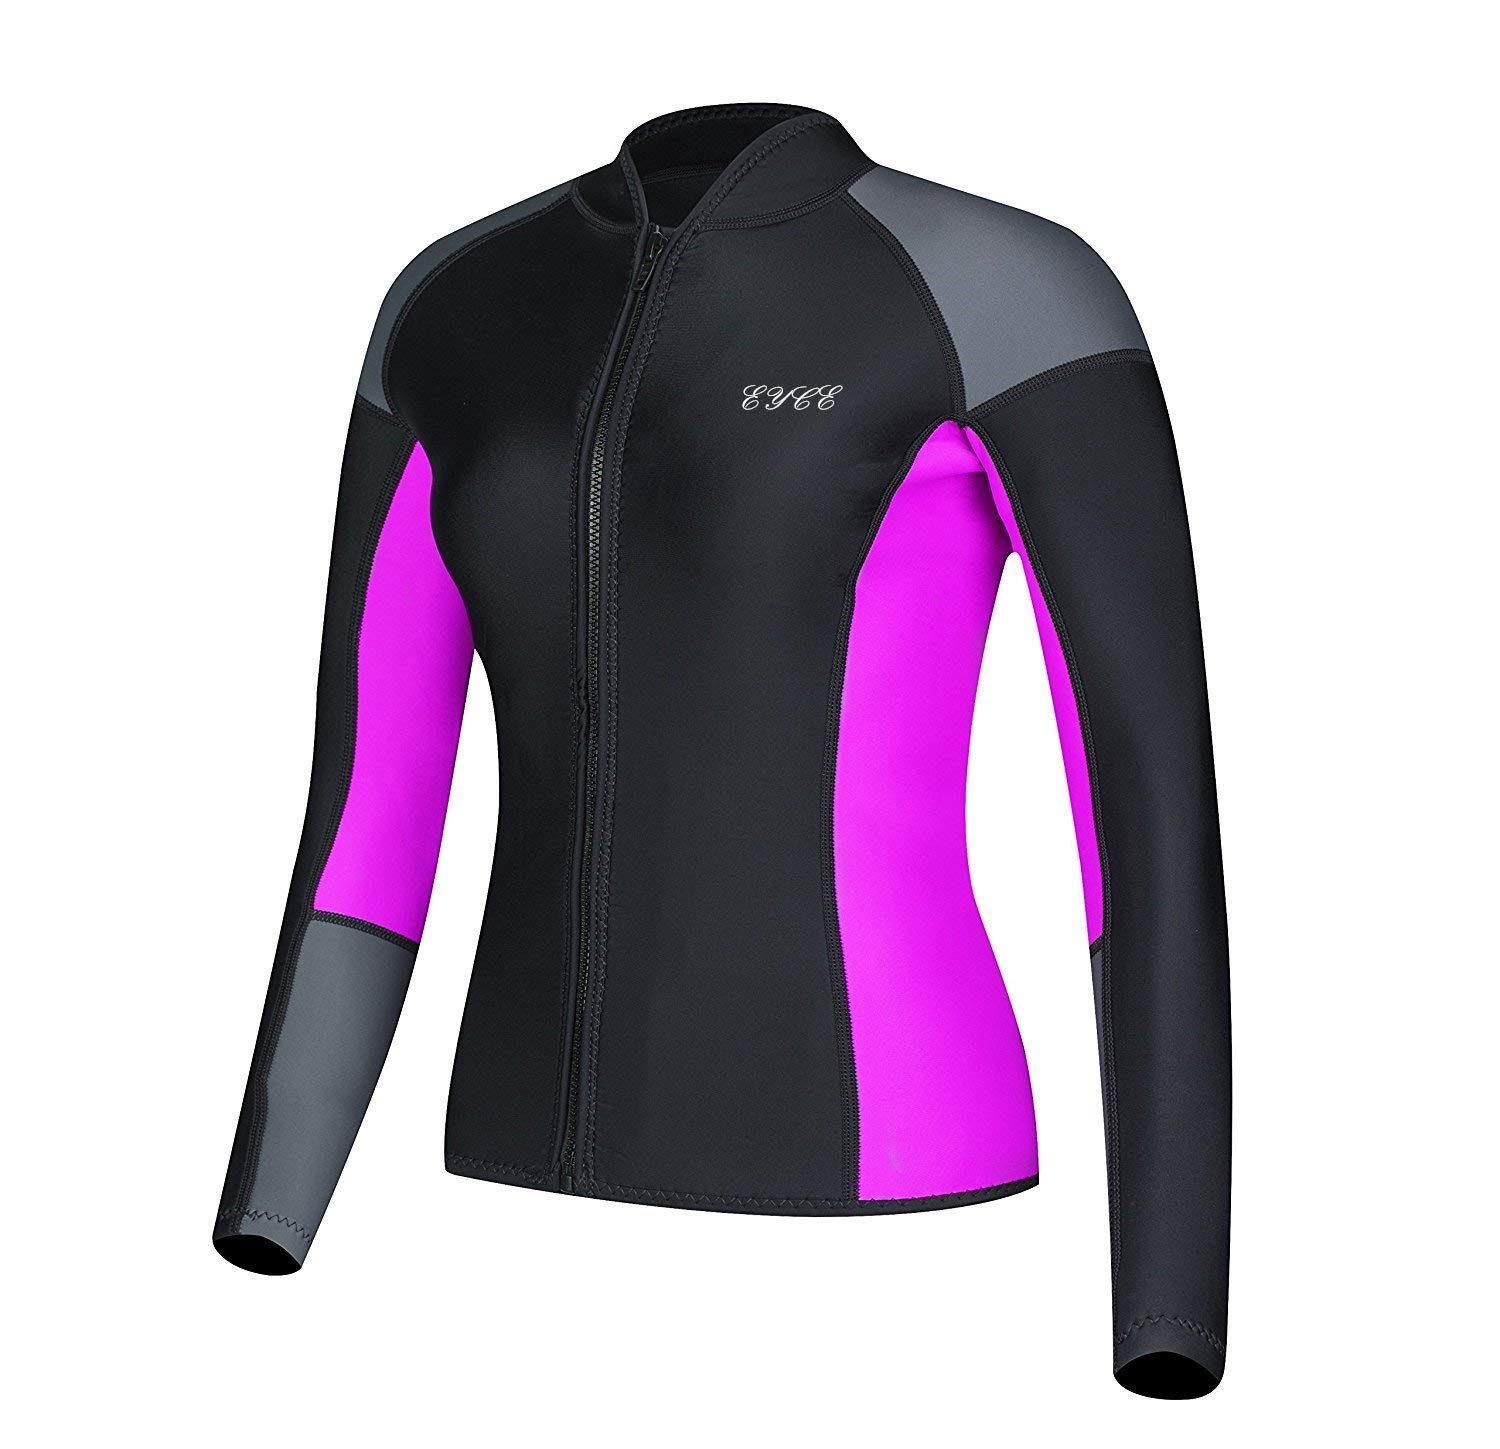 EYCE DIVE & SAIL Women's 1.5 mm Wetsuits Jacket Long Sleeve Neoprene Wetsuit Top (Grey/Purple, XL = US 8) by EYCE DIVE & SAIL